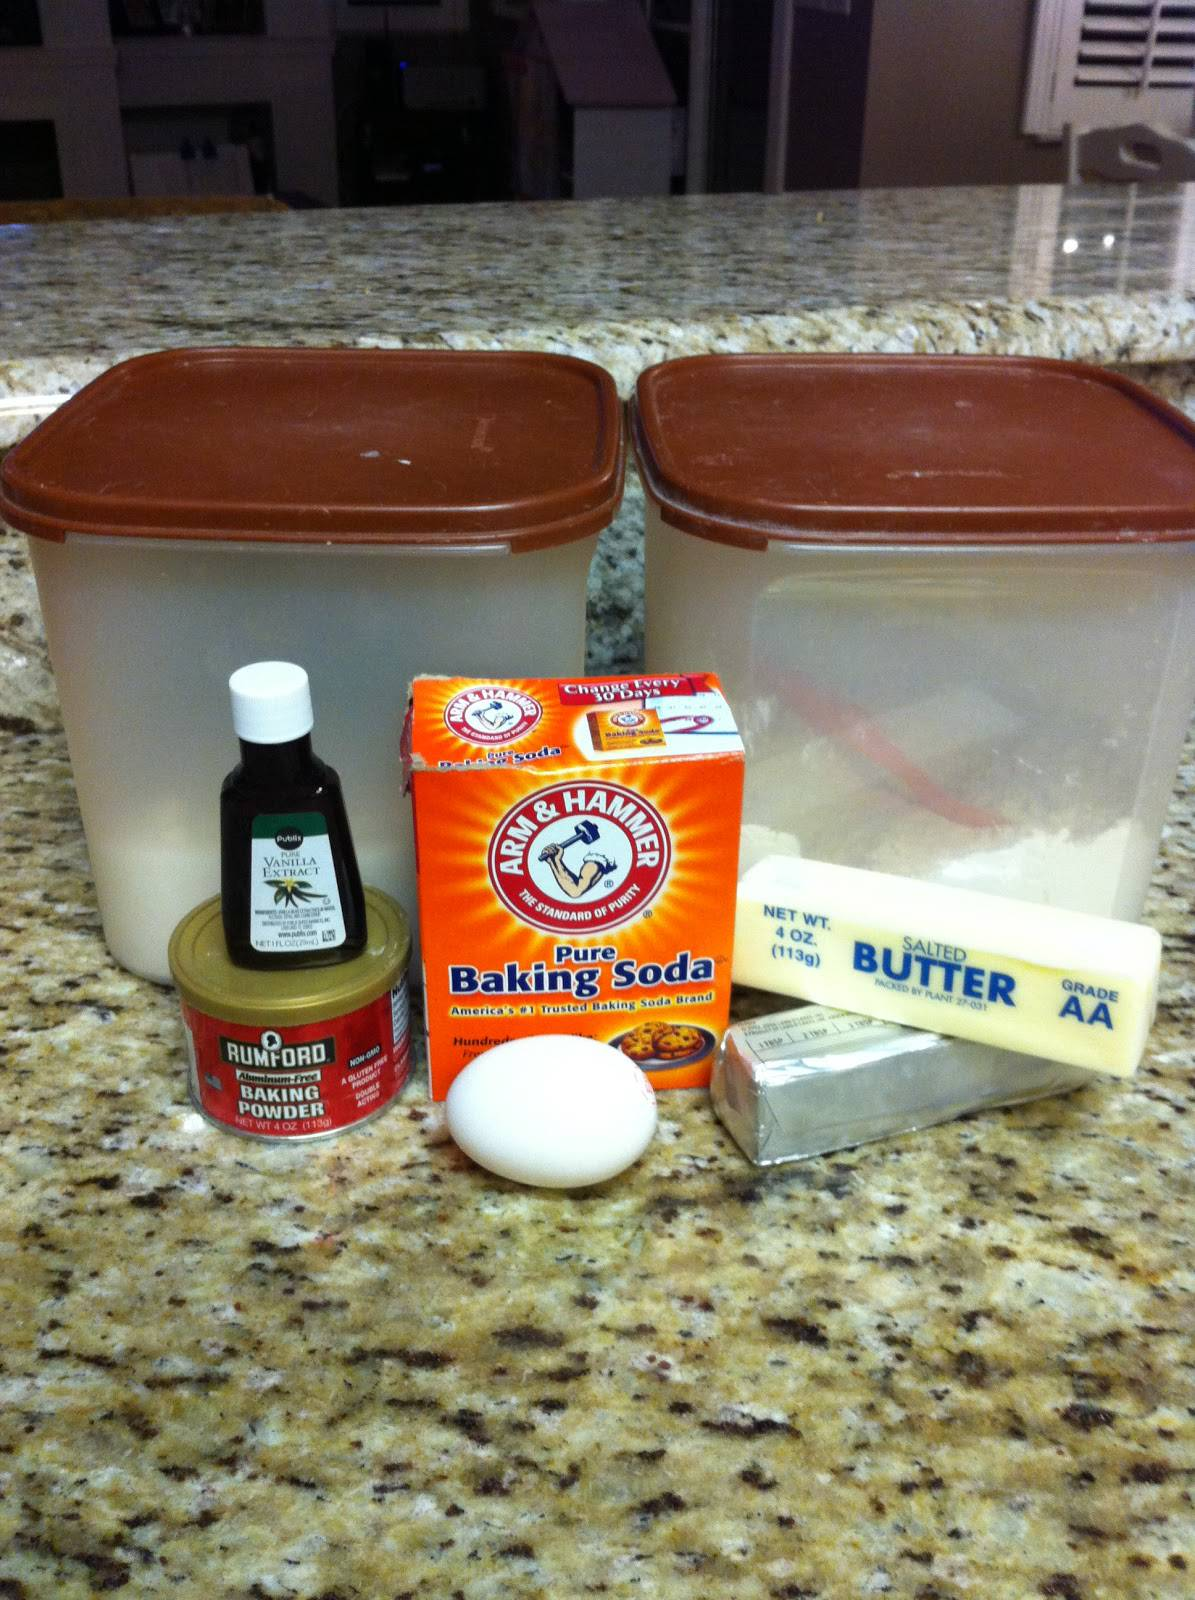 Mix together: 1 cup butter, 1 & 1/2 cups sugar, 1 tsp. vanilla extract, 1  egg, 1 & 3/4 cups flour. Slowly mix in 1/2 tsp. baking powder, 1 tsp. baking  soda, ...